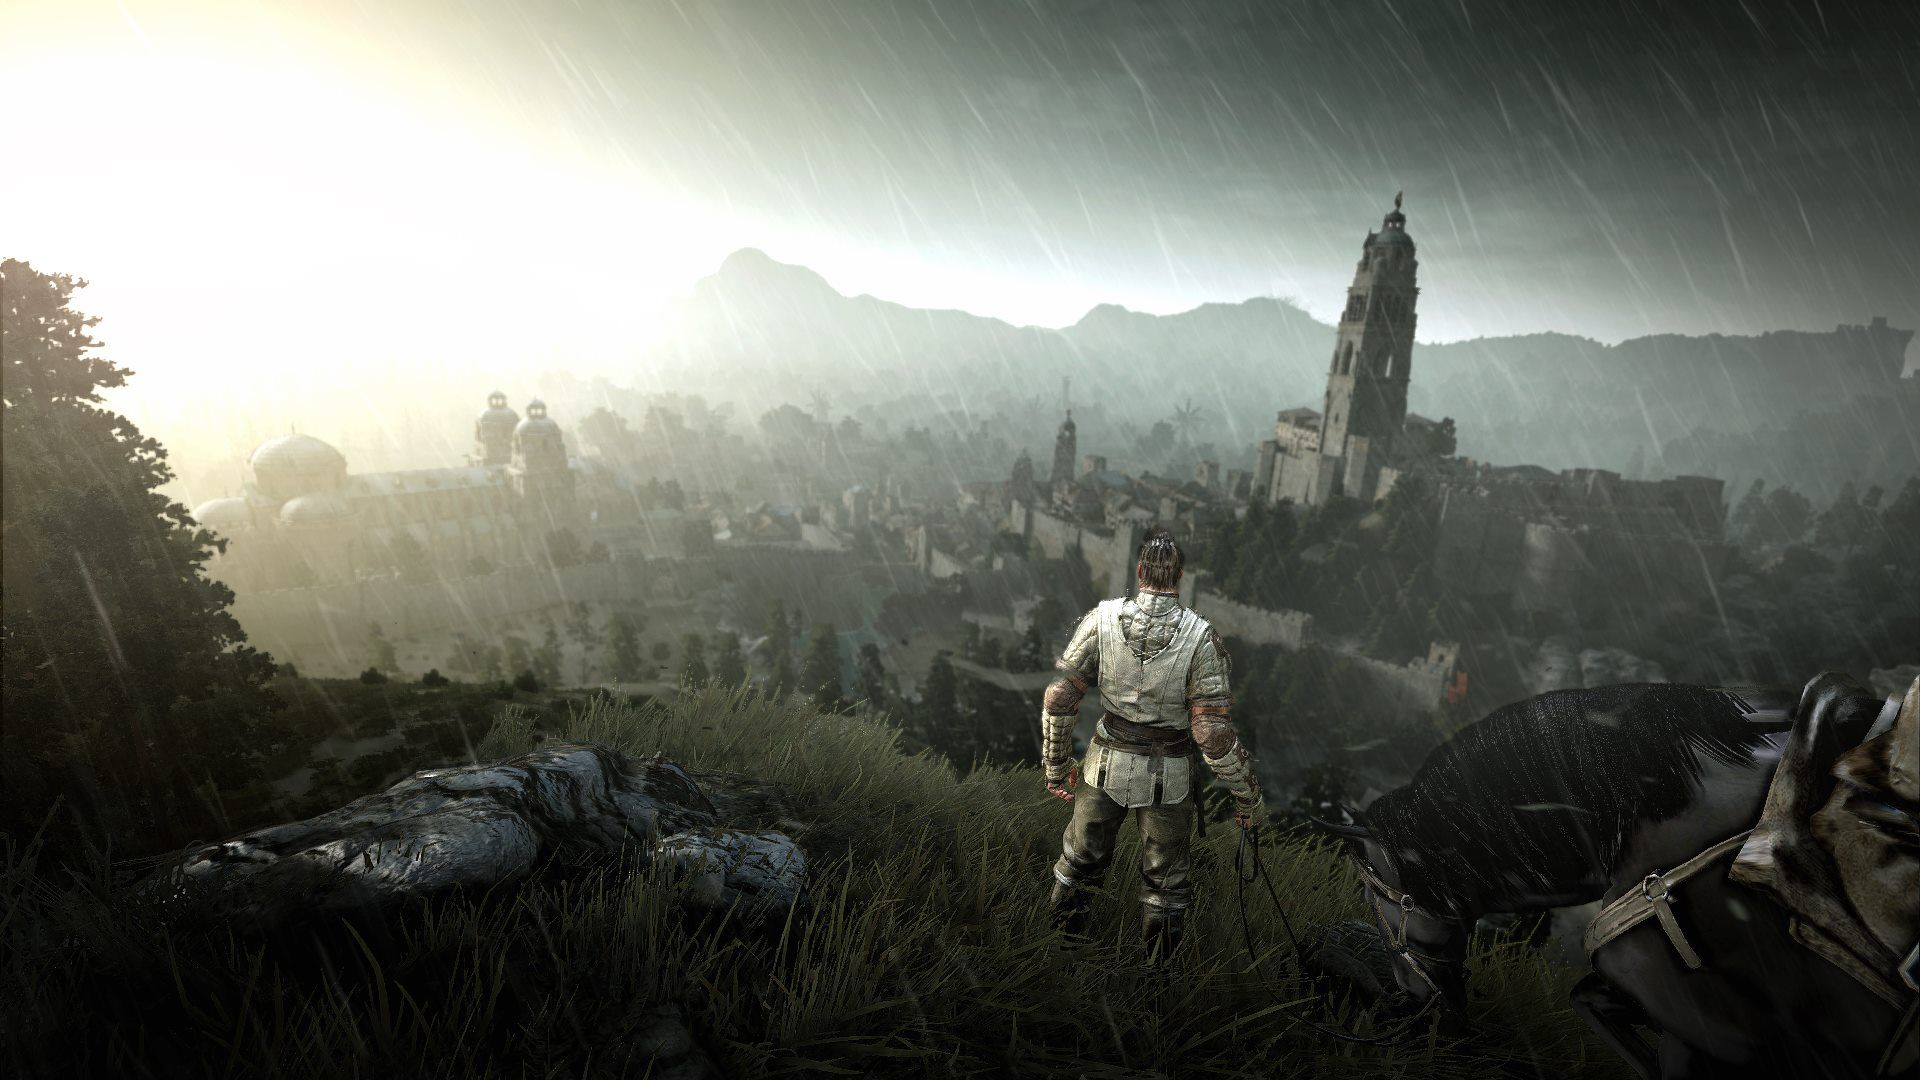 Image from BDOnline for Worth Playing MMORPG Games list